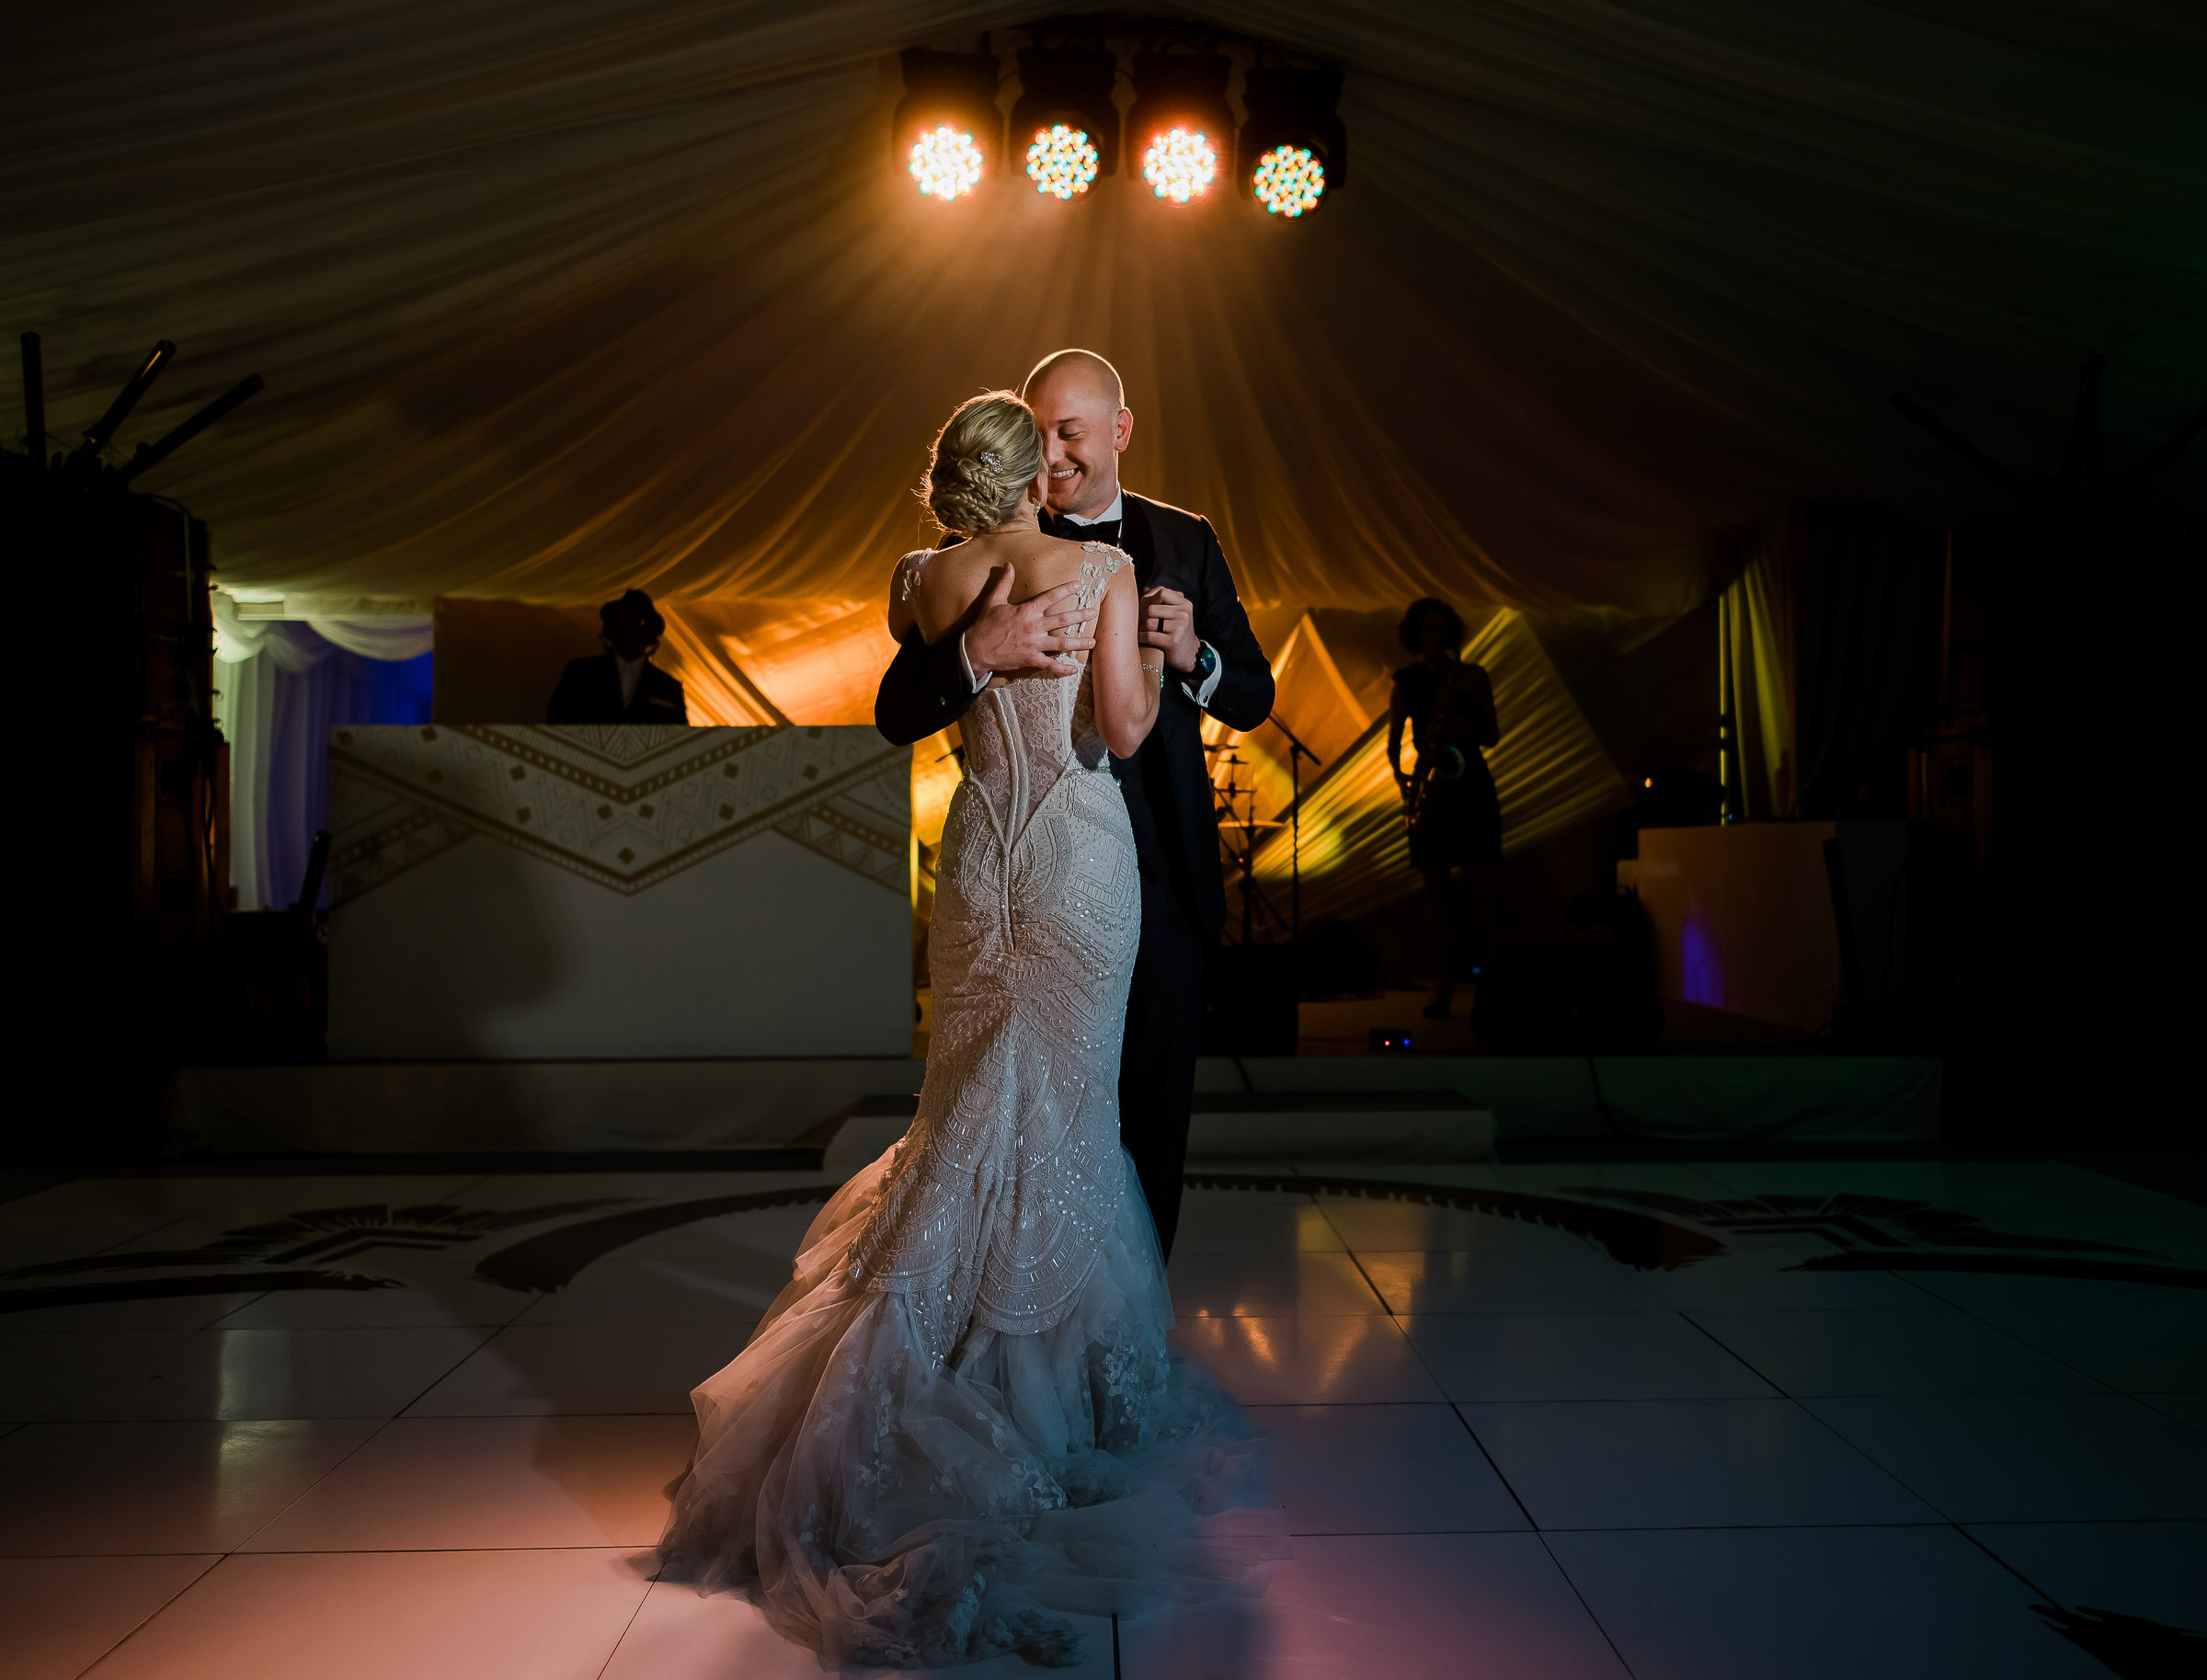 Romantic first dance - photo by The Brenizers